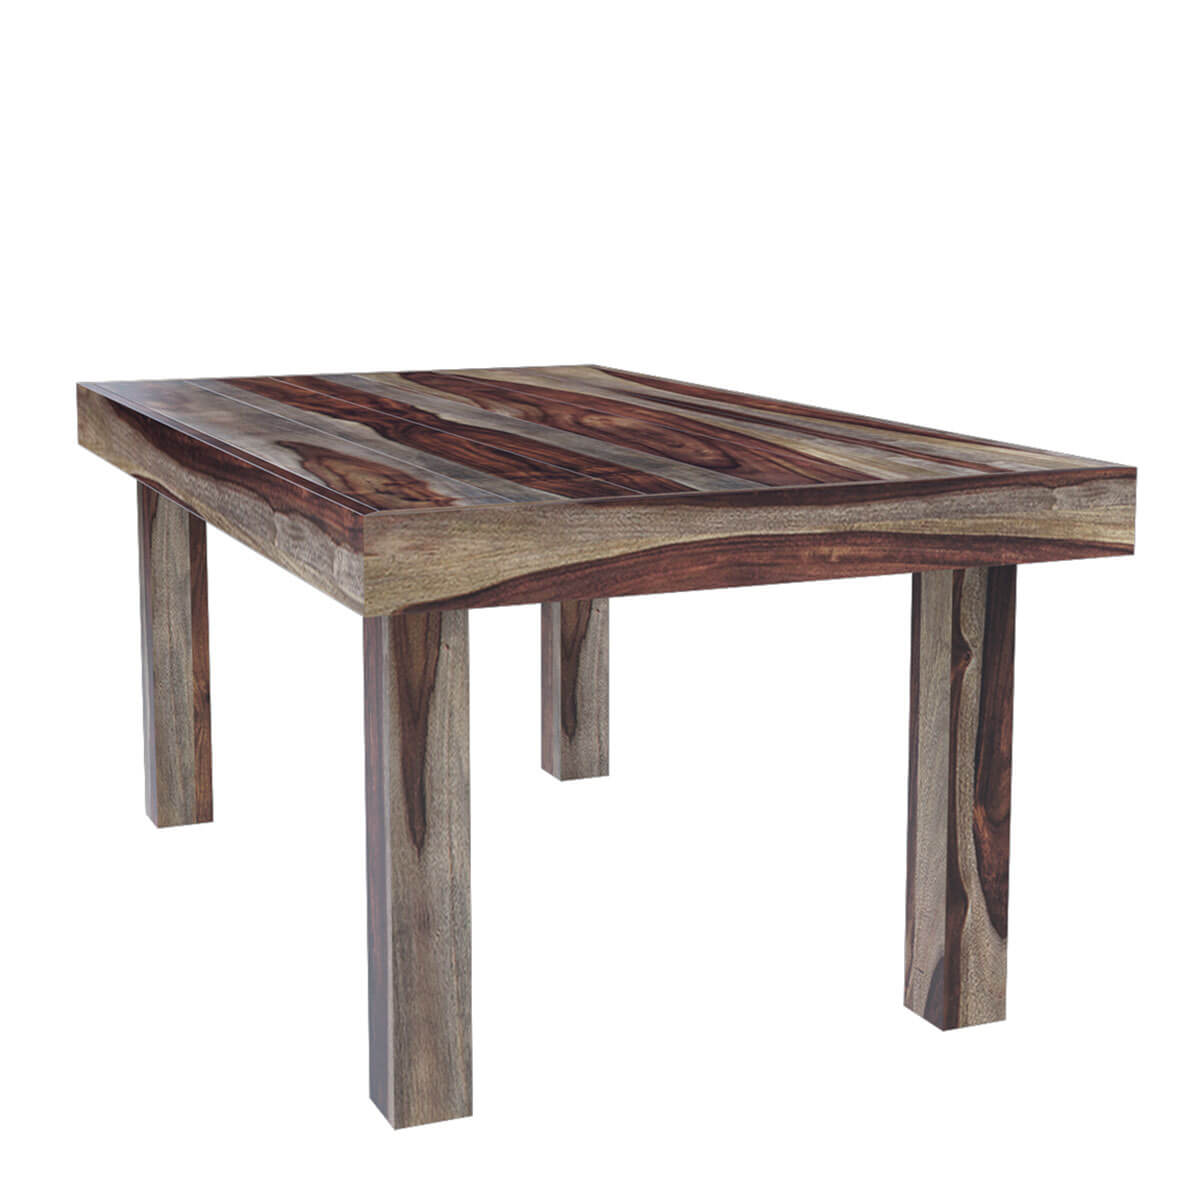 Frisco modern solid wood rectangular rustic dining room table for Modern rectangular dining table